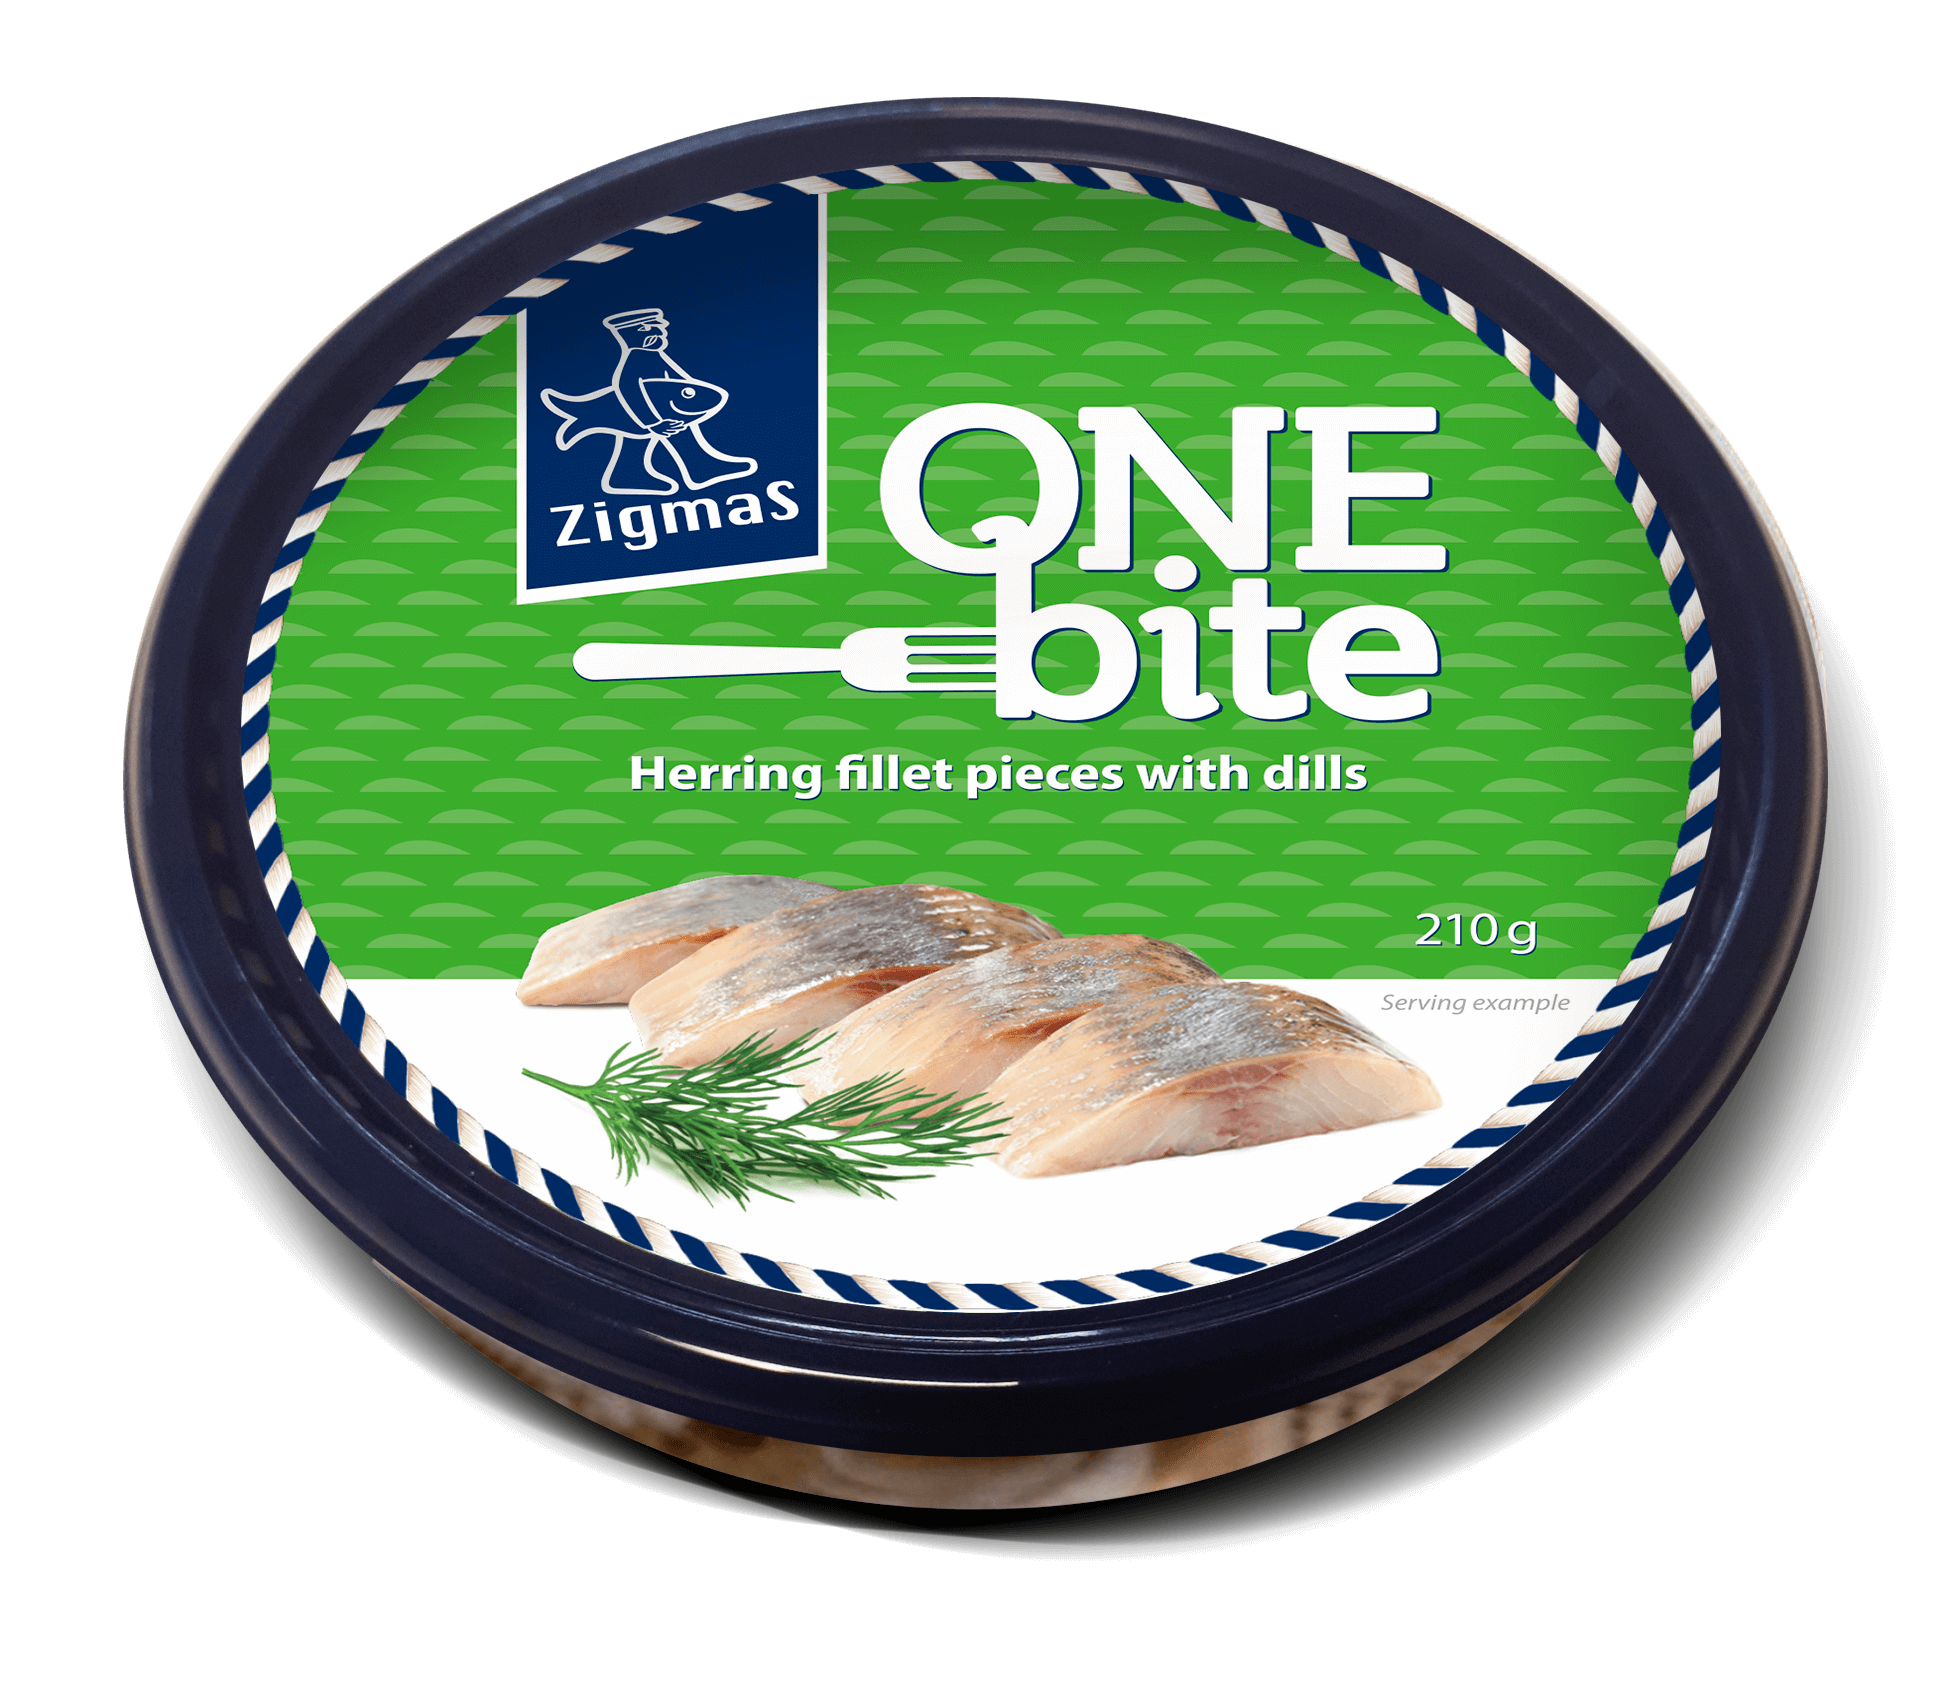 ONE BITE herring fillet pieces with dills